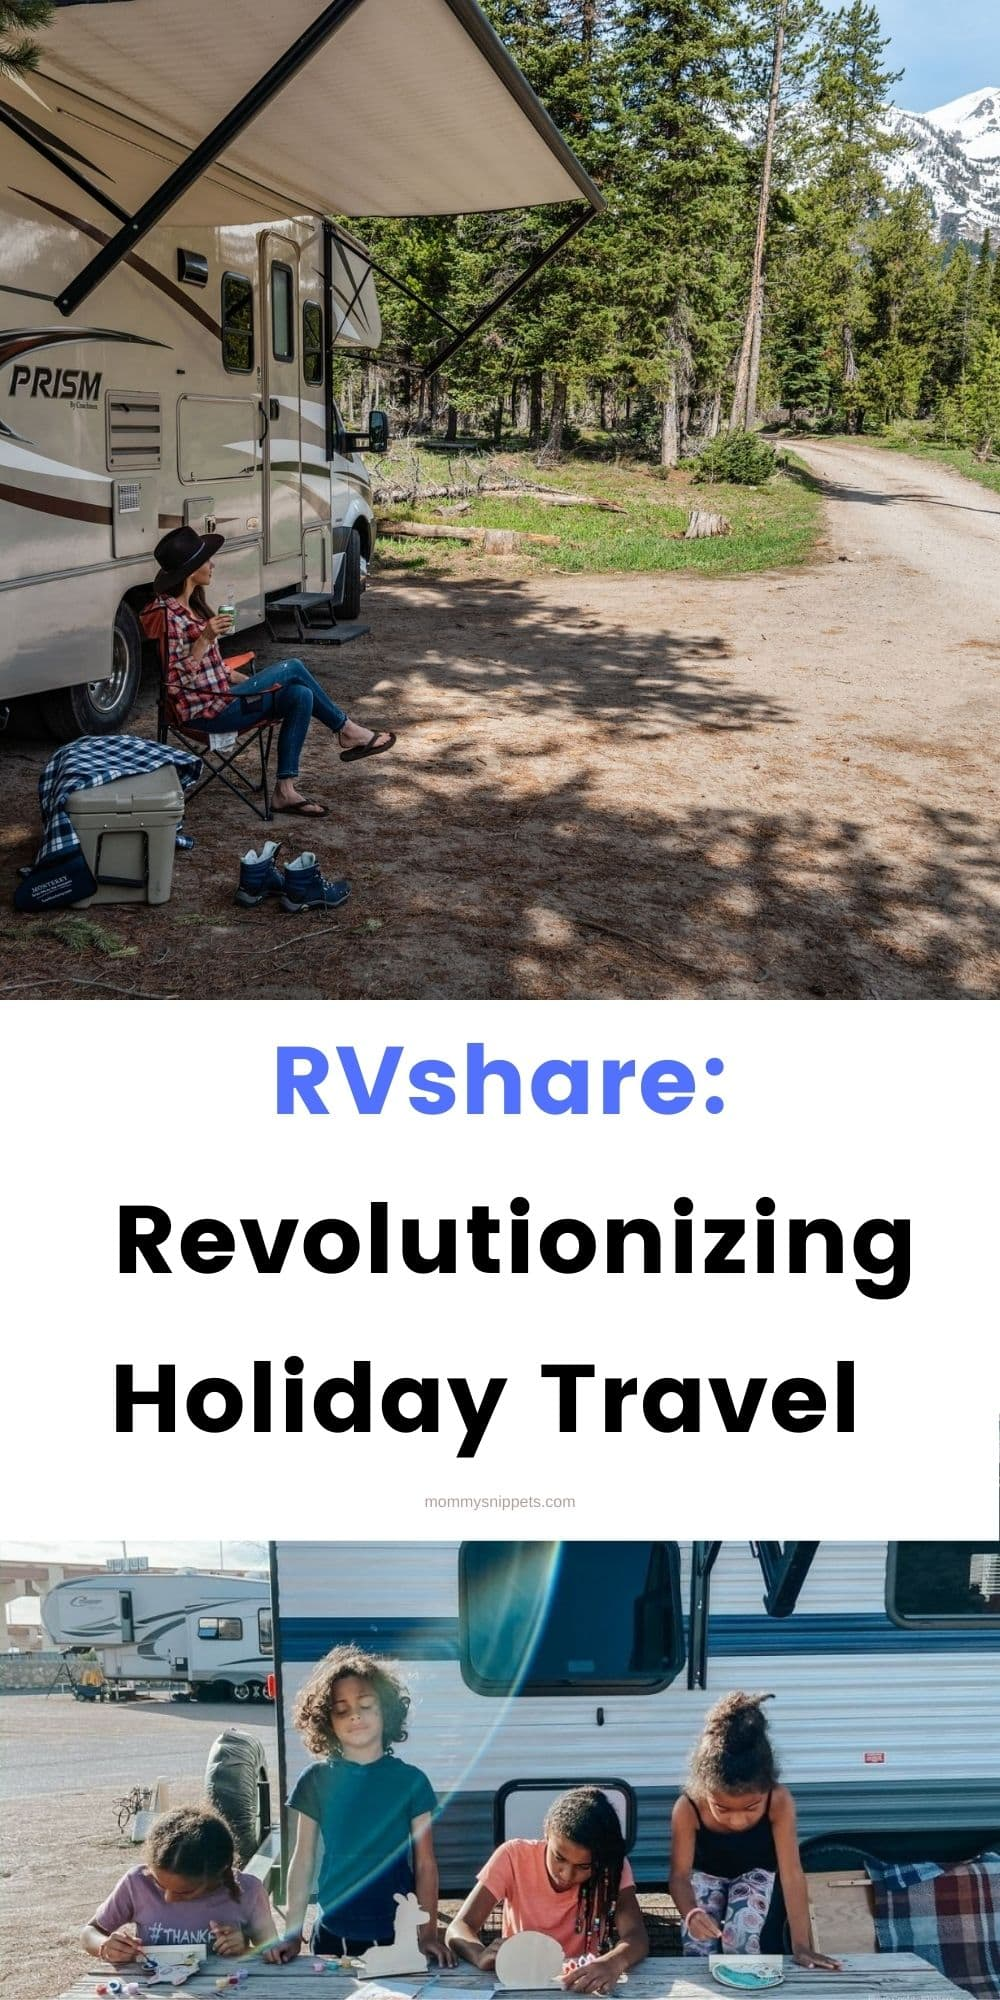 RVshare is revolutionizing holiday travel this year- MommySnippets.com